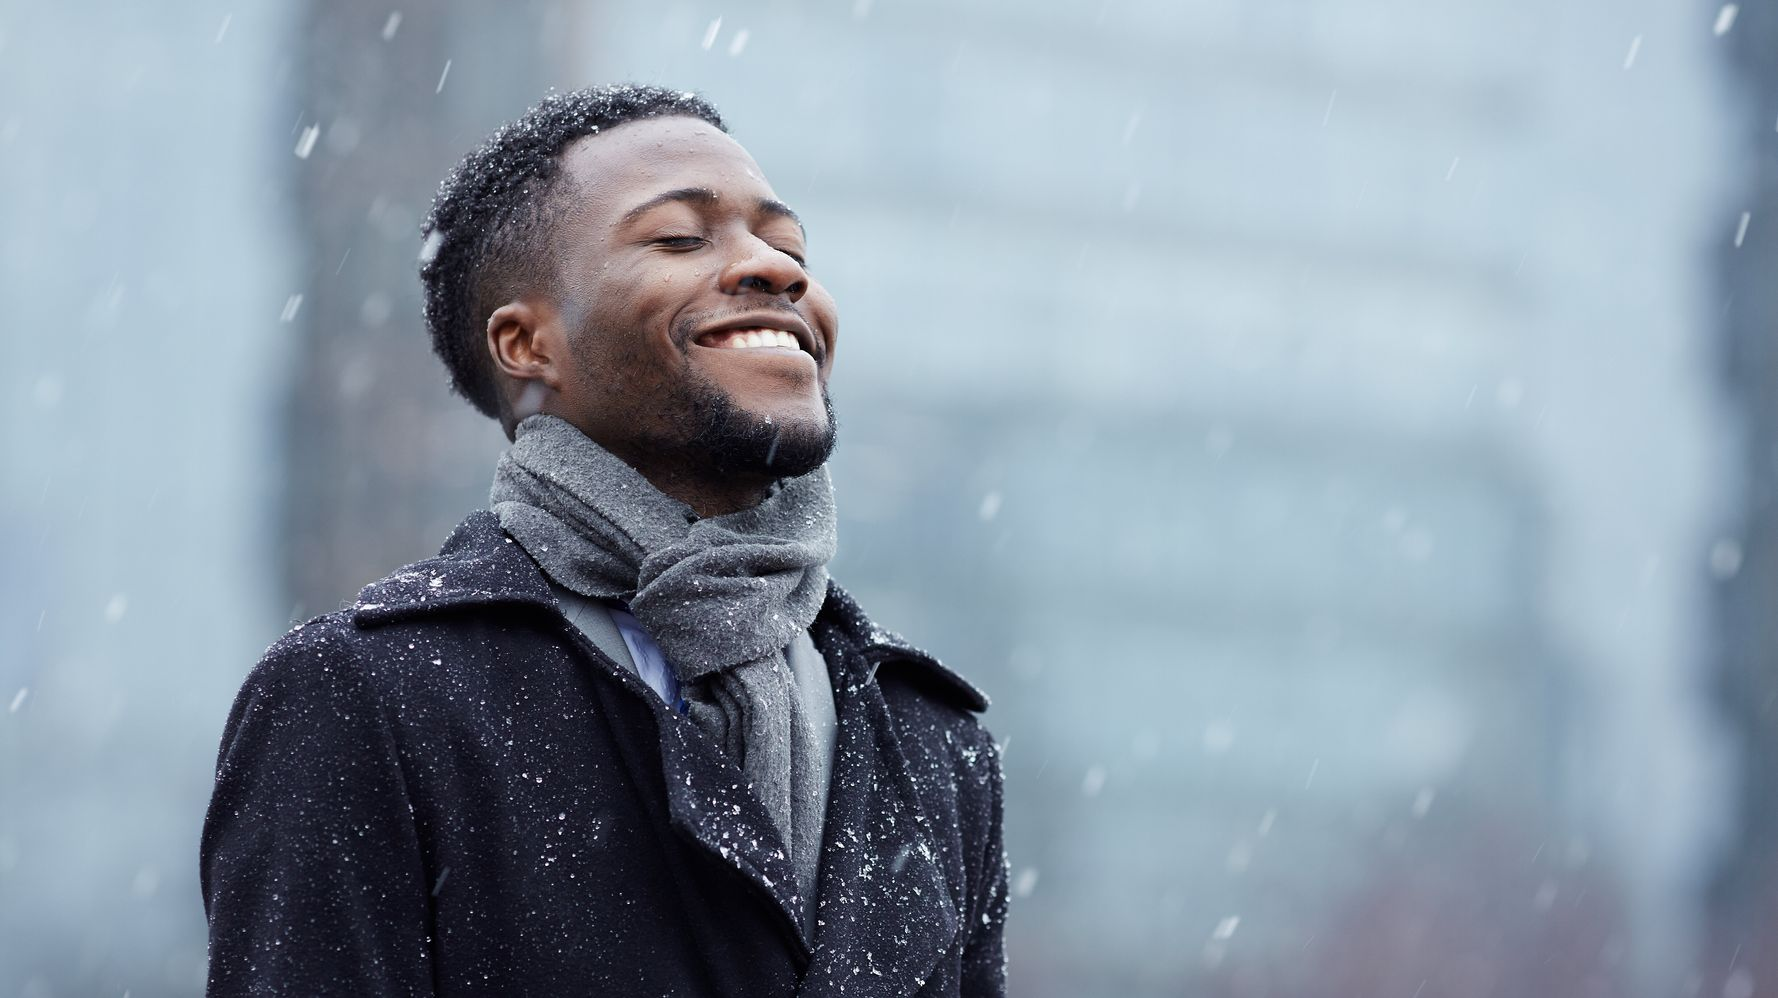 7 Ways To Take Care Of Your Mental Health During The Winter